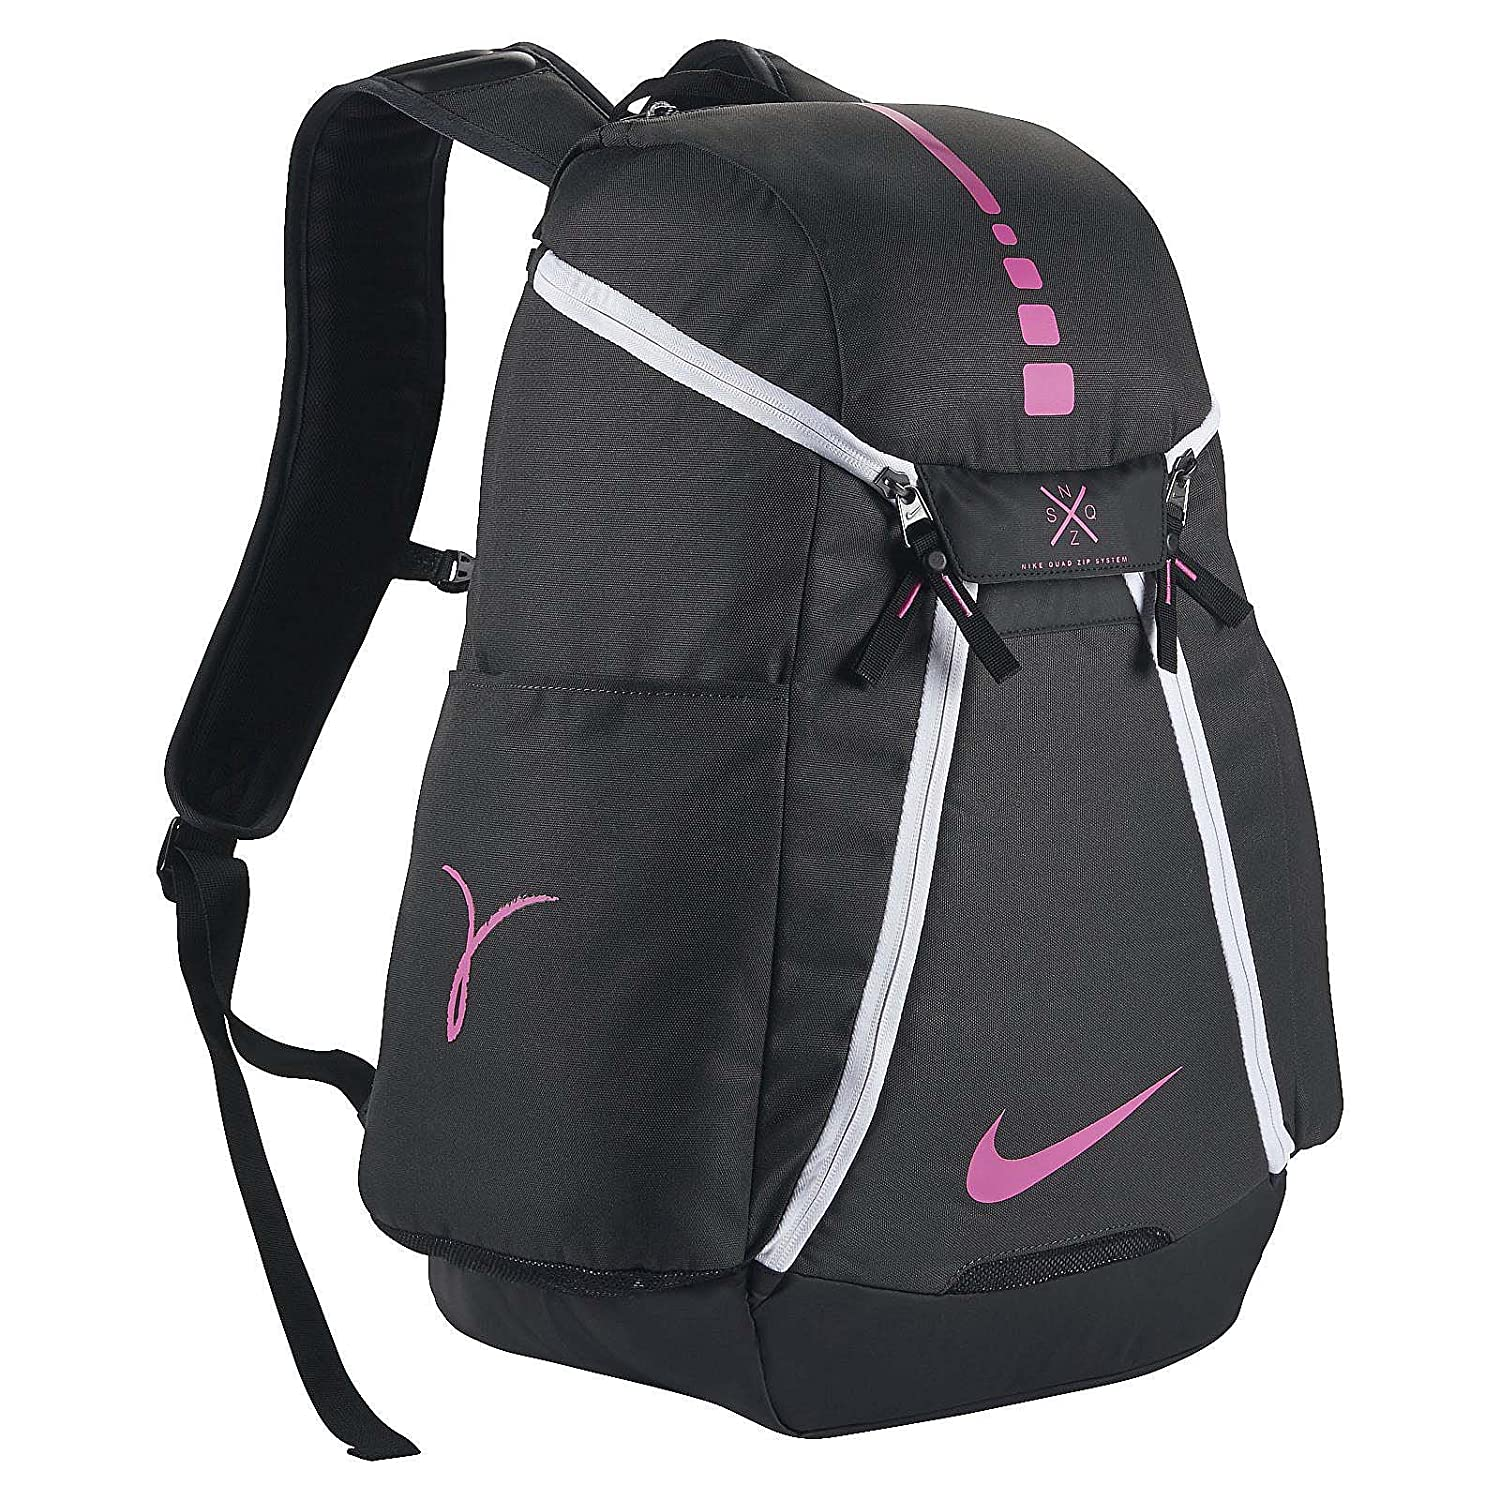 35c6dc1b40a7 Amazon.com  Nike Hoops Elite Max Air Team 2.0 Basketball Backpack  Anthracite Black Pinkfire II Size One Size  Sports   Outdoors